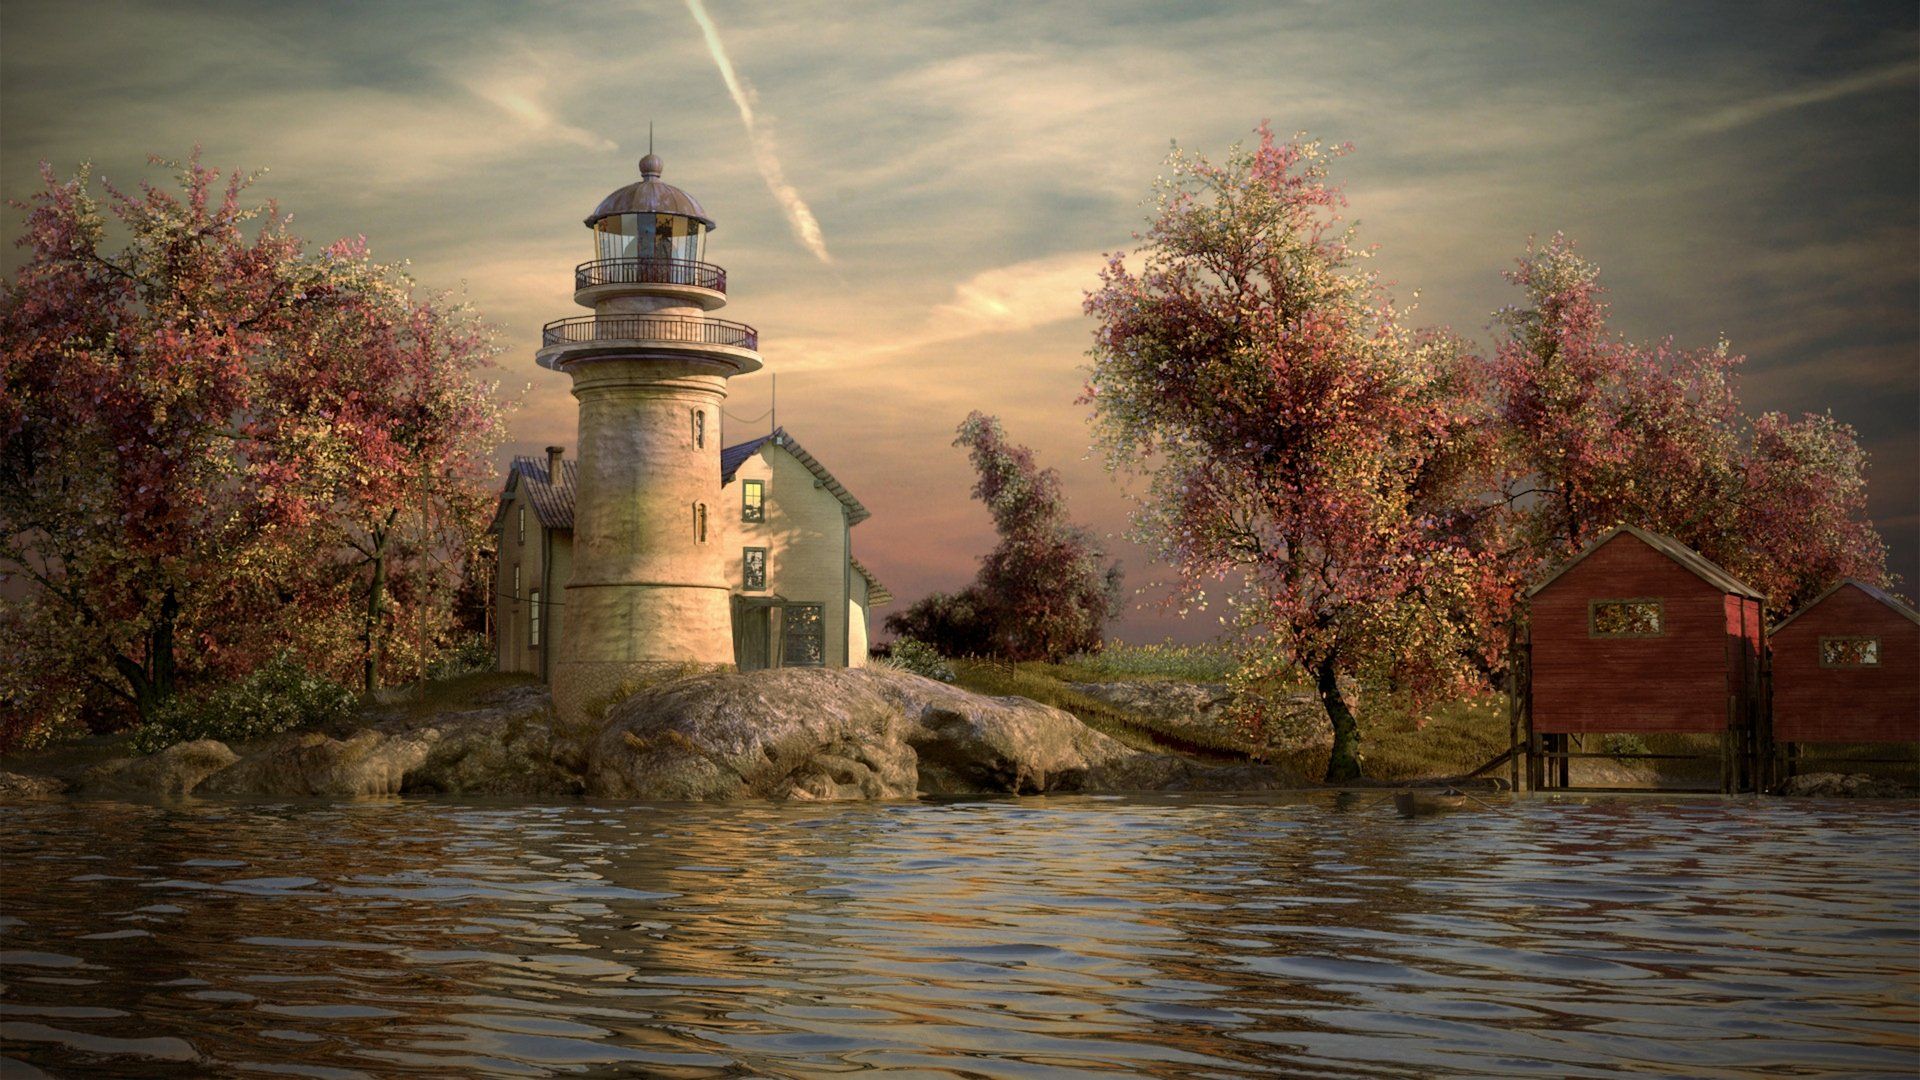 Visualization lighthouse on the river. Presentation job. 2014